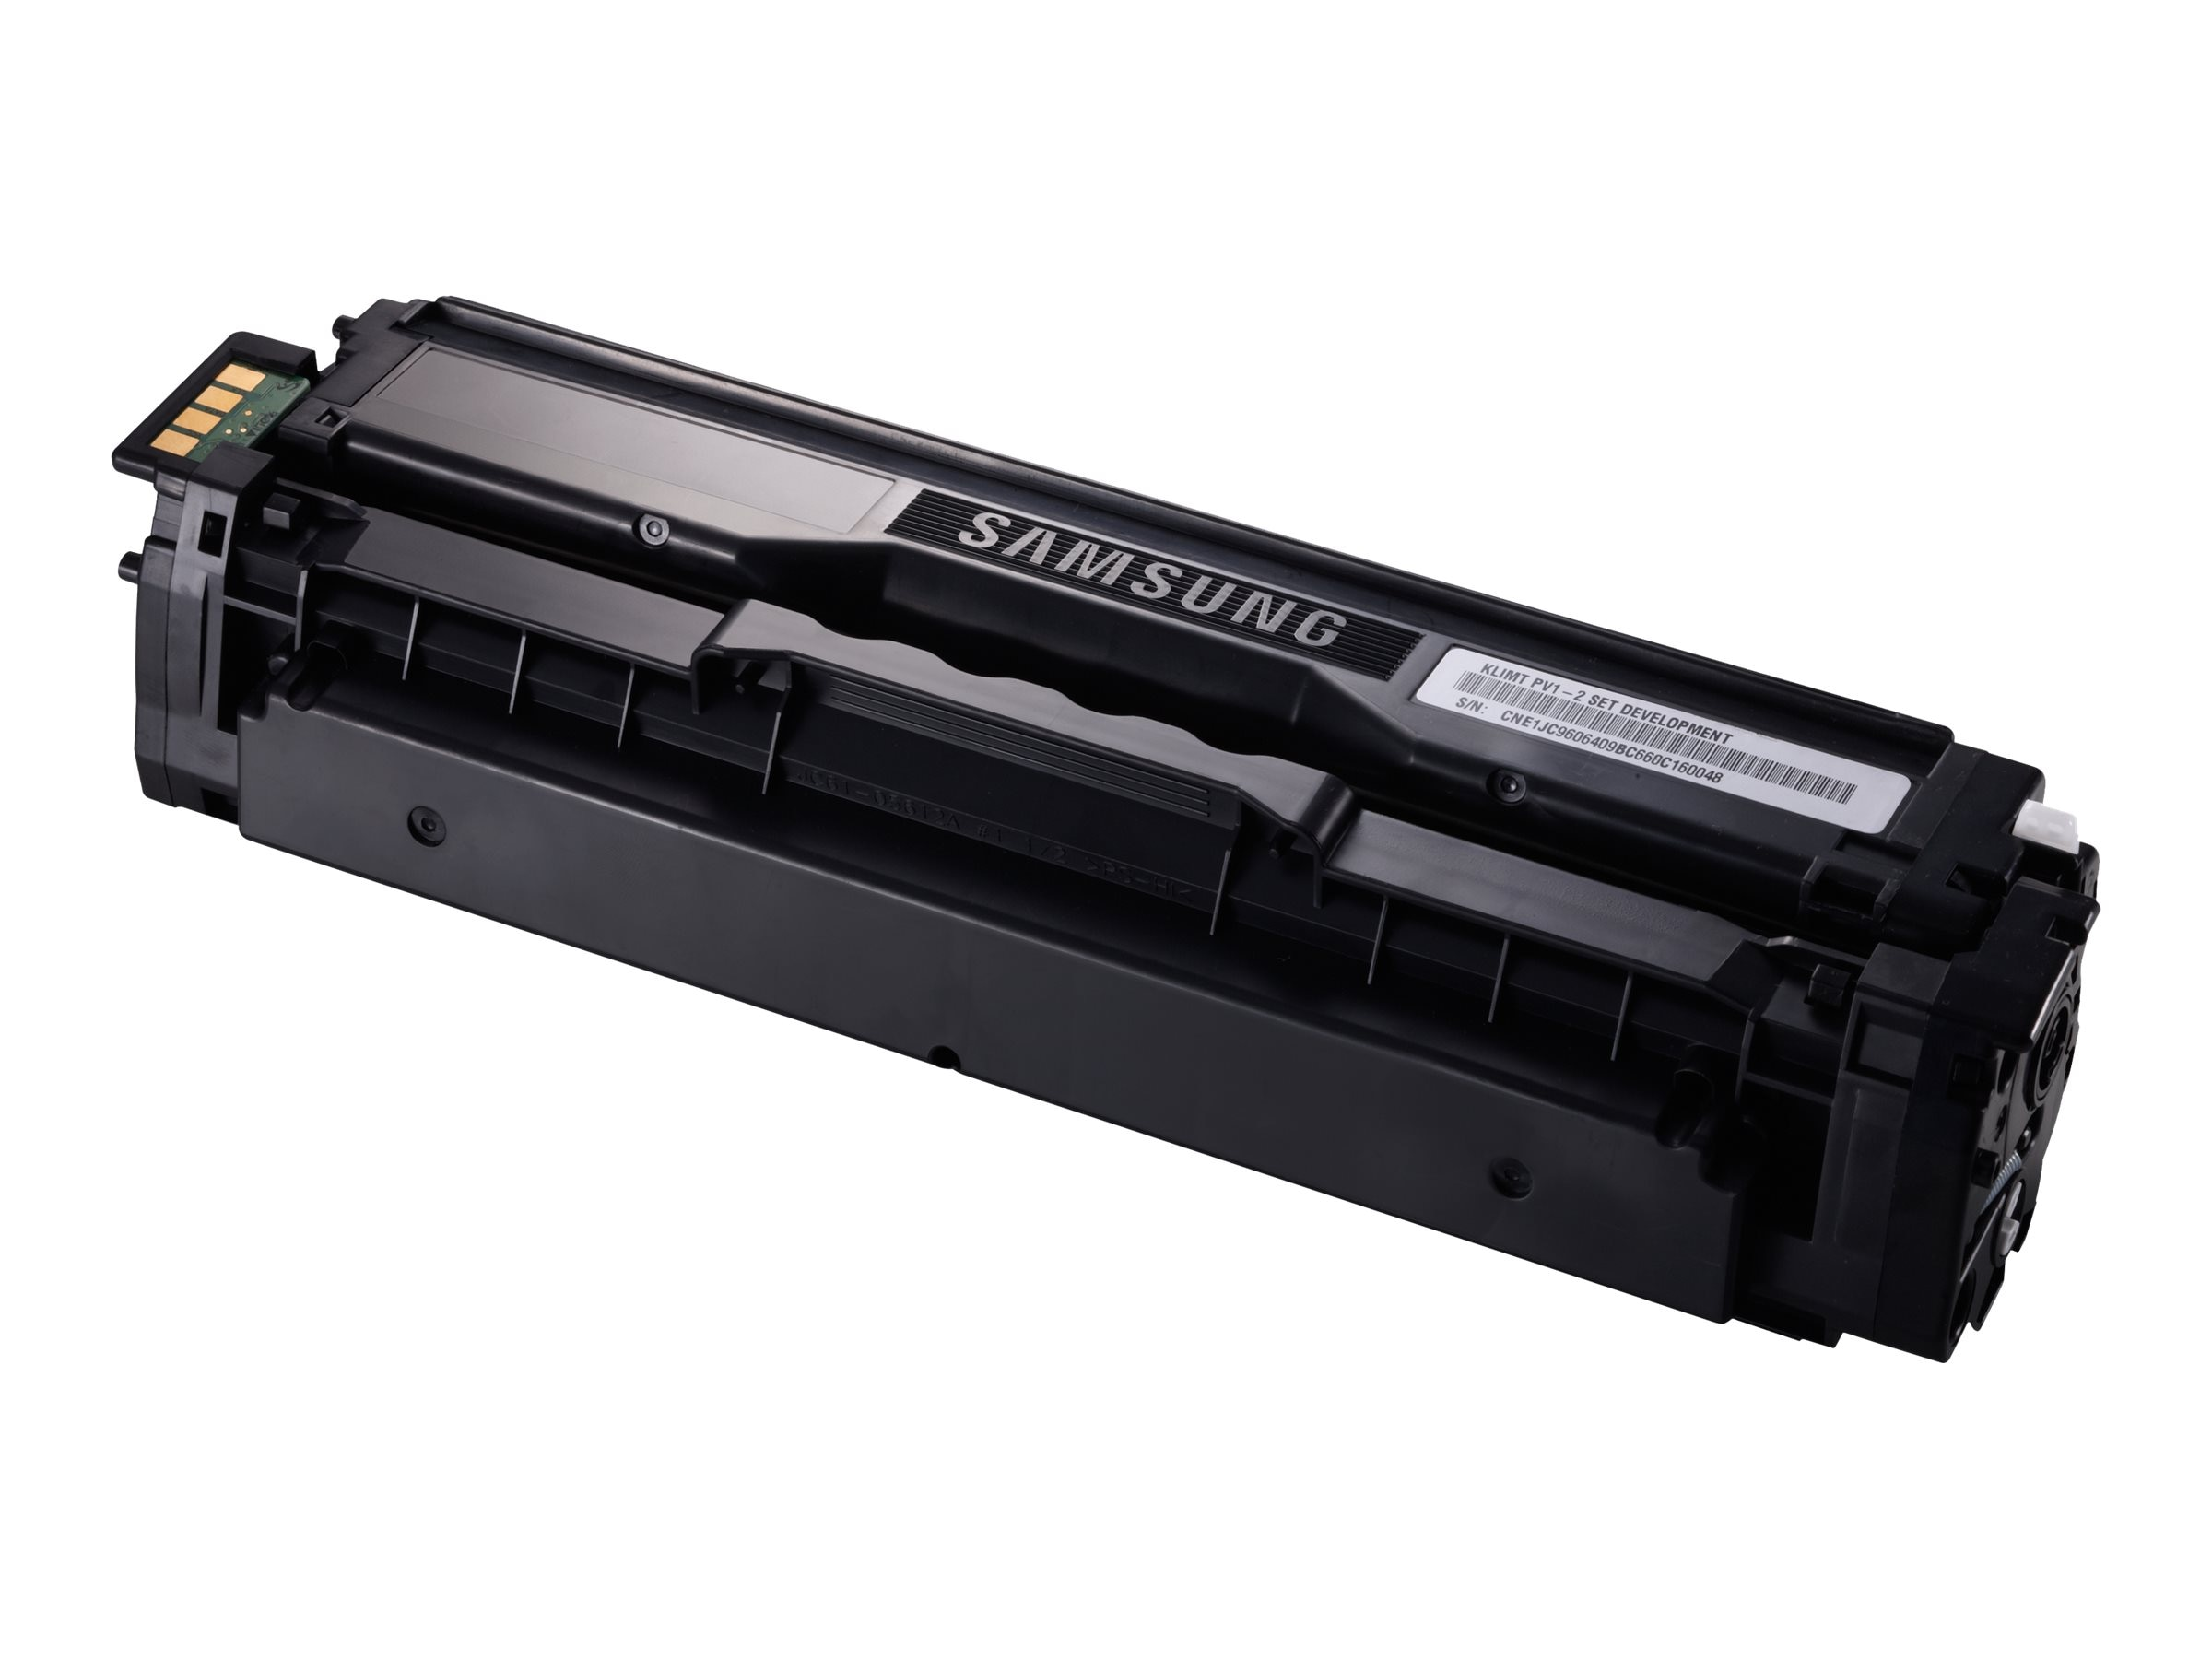 Samsung Black Toner Cartridge for CLP-415NW Color Laser Printer & CLX-4195FW Color Multifunction Printer